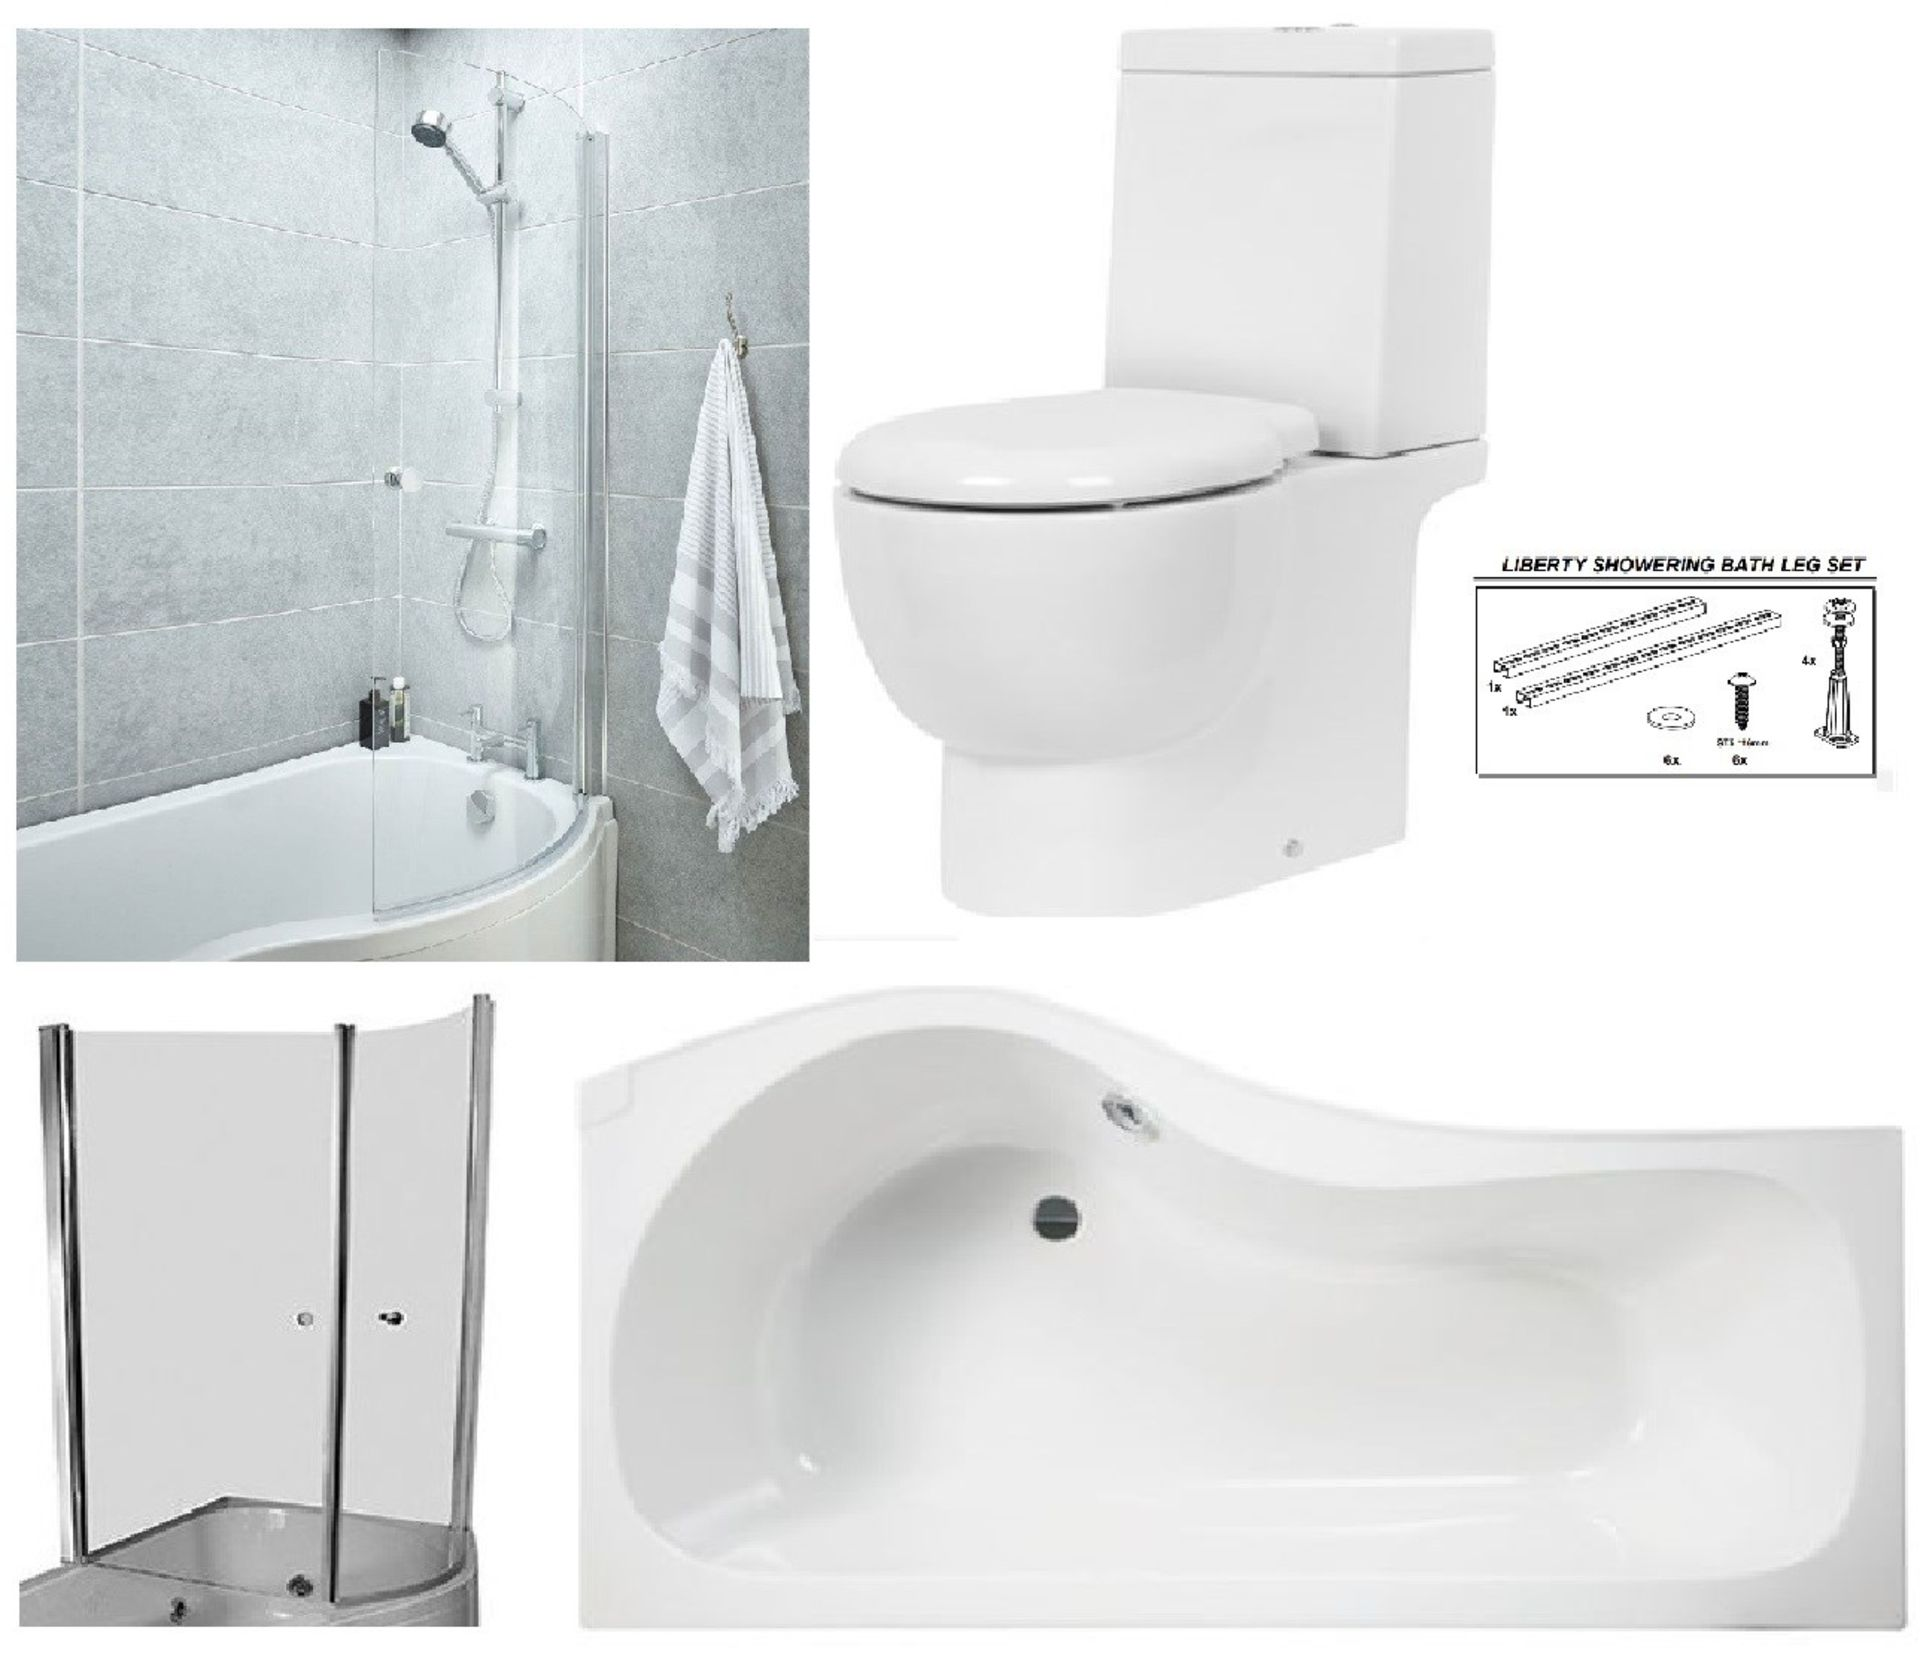 Lot 5 - Bathstore Liberty' RIGHT HANDED 1500mm re-enforced 'P' shower bath with curved pivot front bath